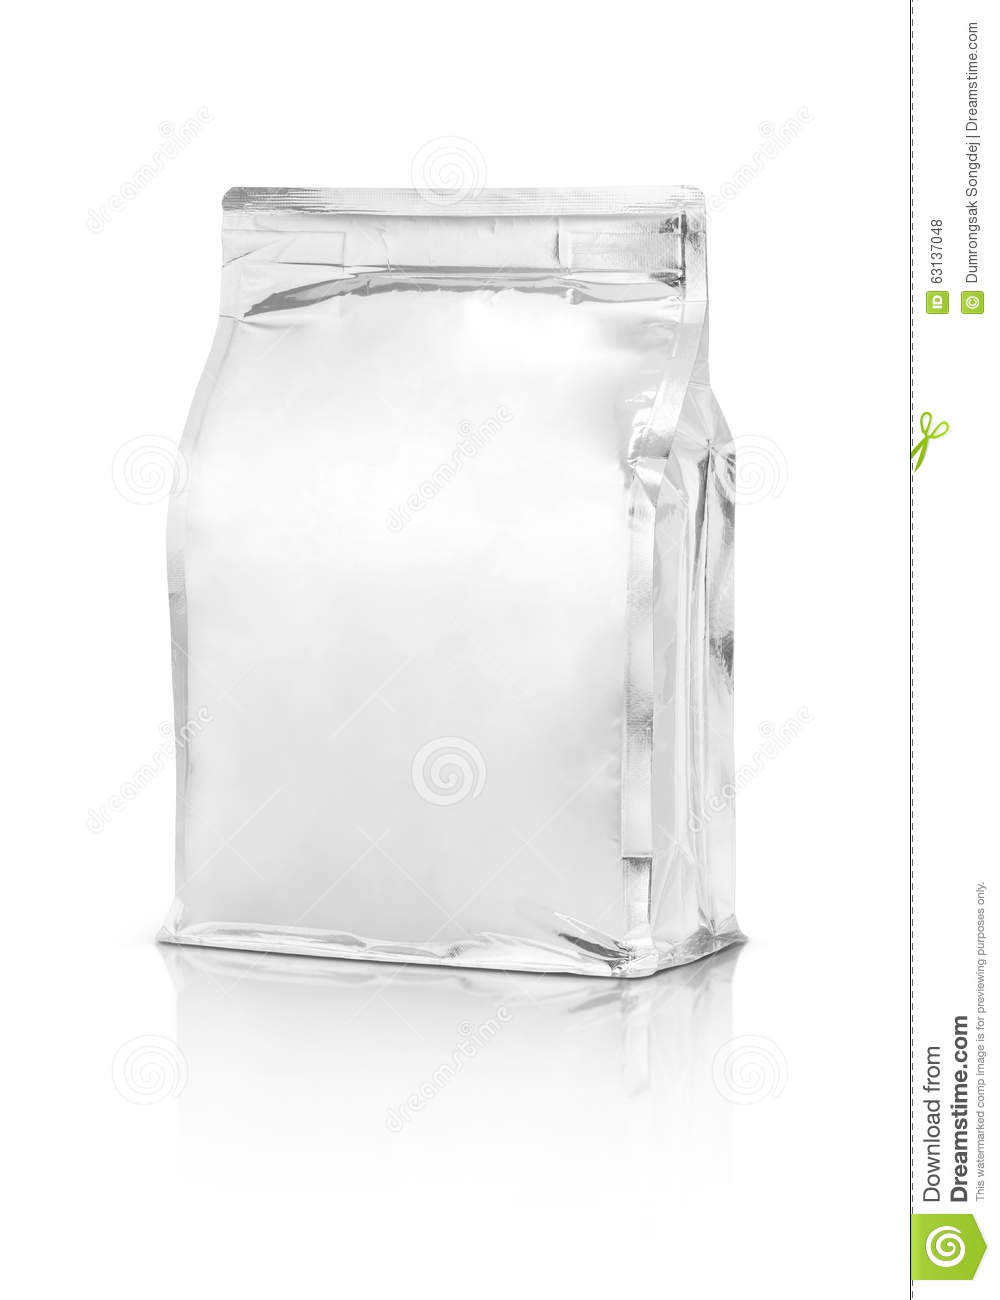 Download Blank Packaging Aluminium Foil Pouch Isolated On White Stock Photo - Image of ready, blank: 63137048